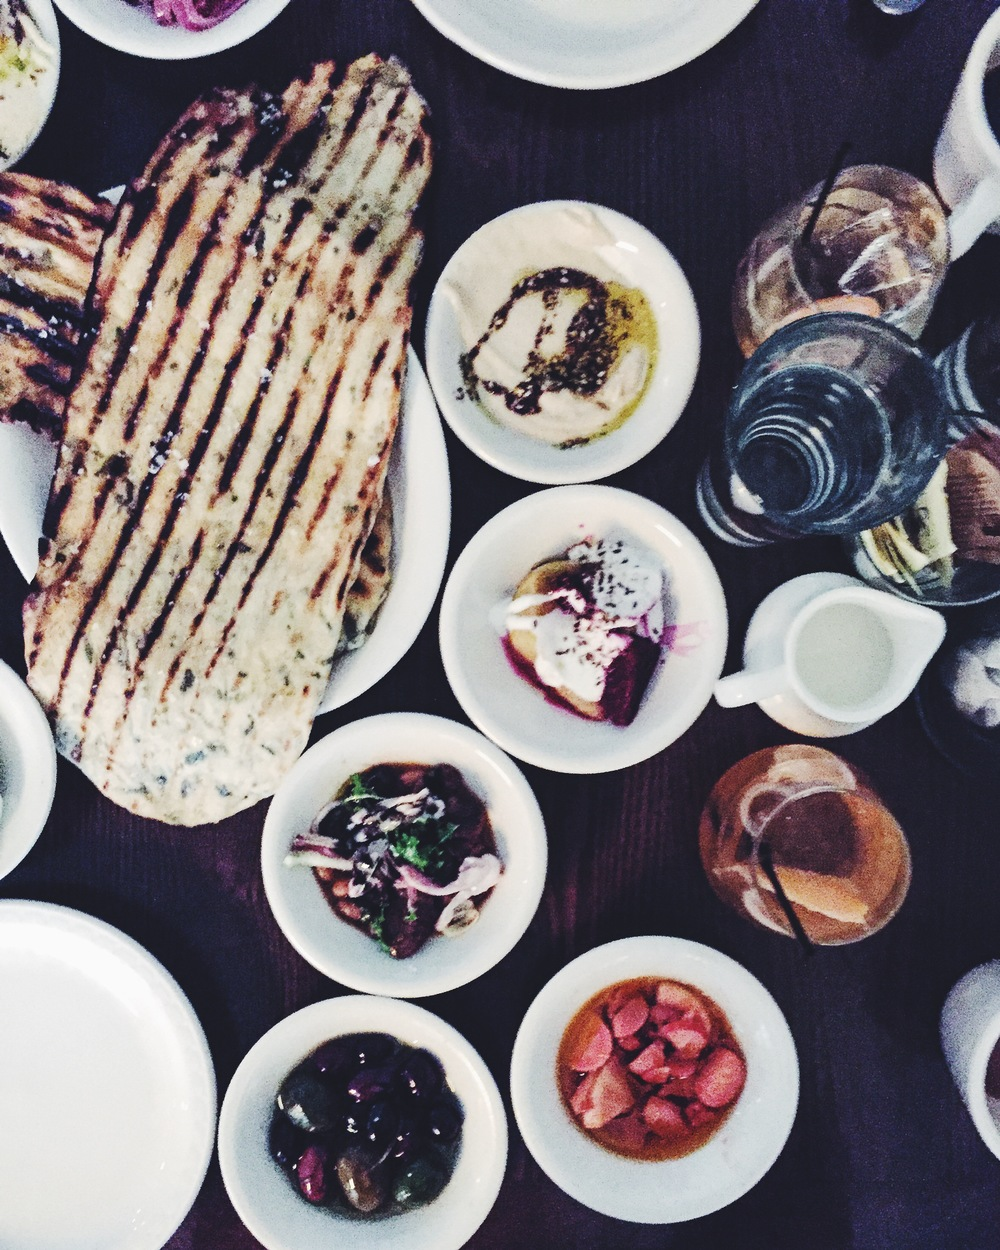 The Mezze Feast